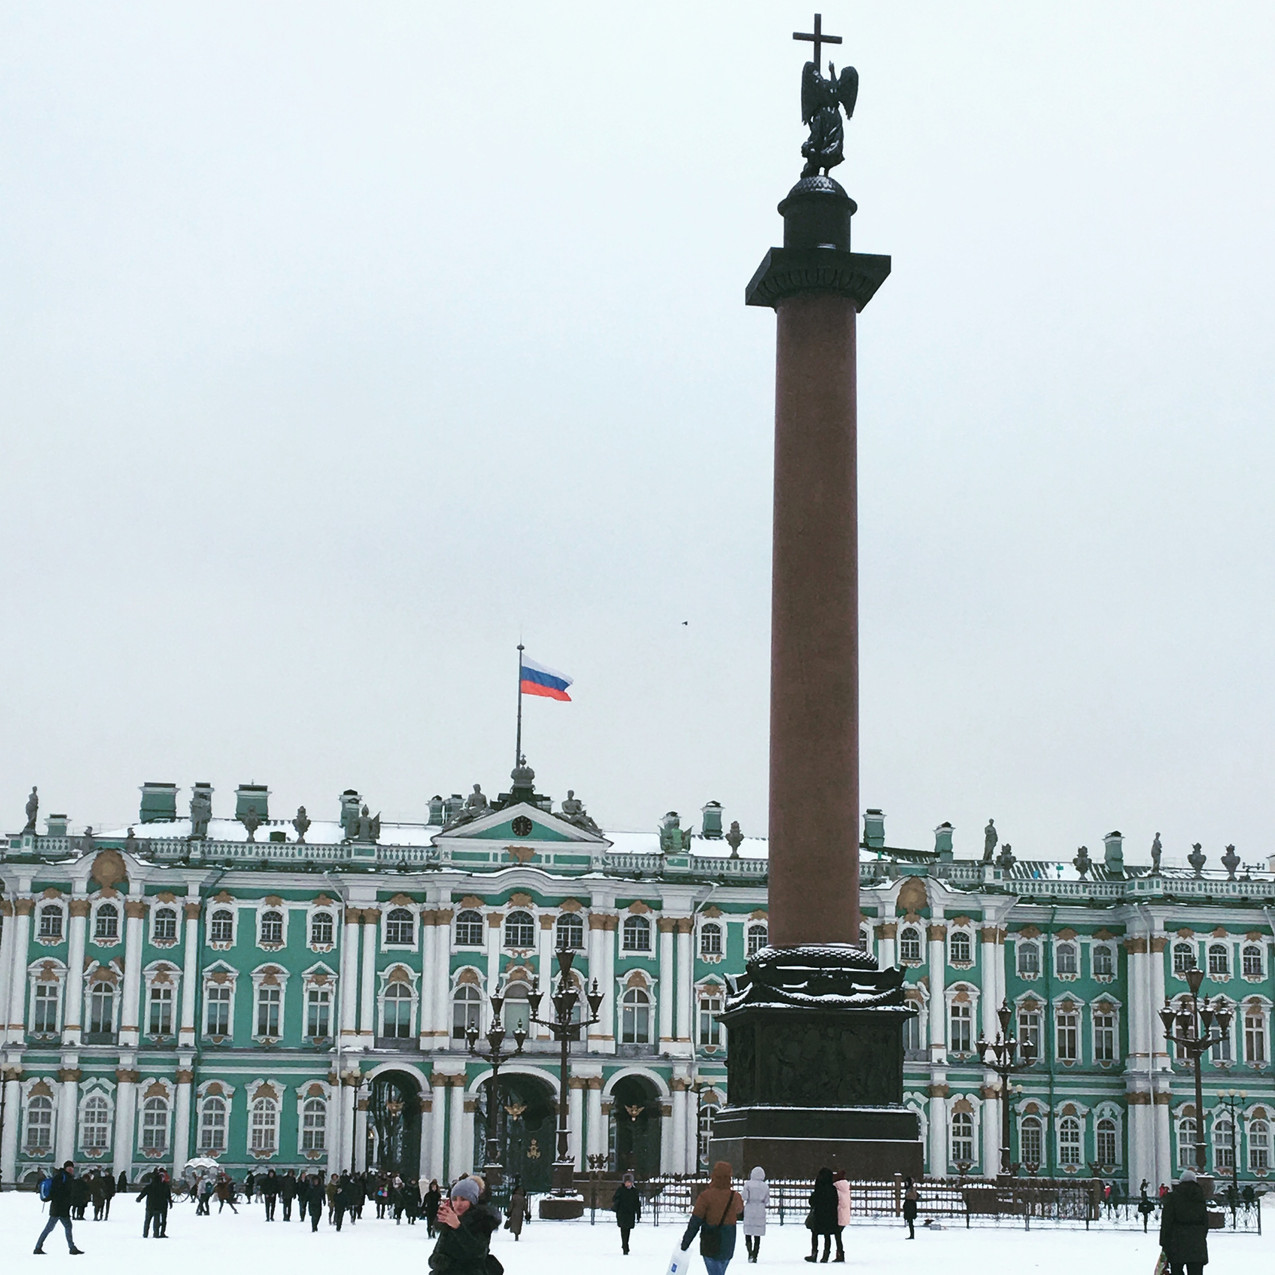 The Winter Palace in St. Petersburg, once home to the imperial family and now the Hermitage museum.